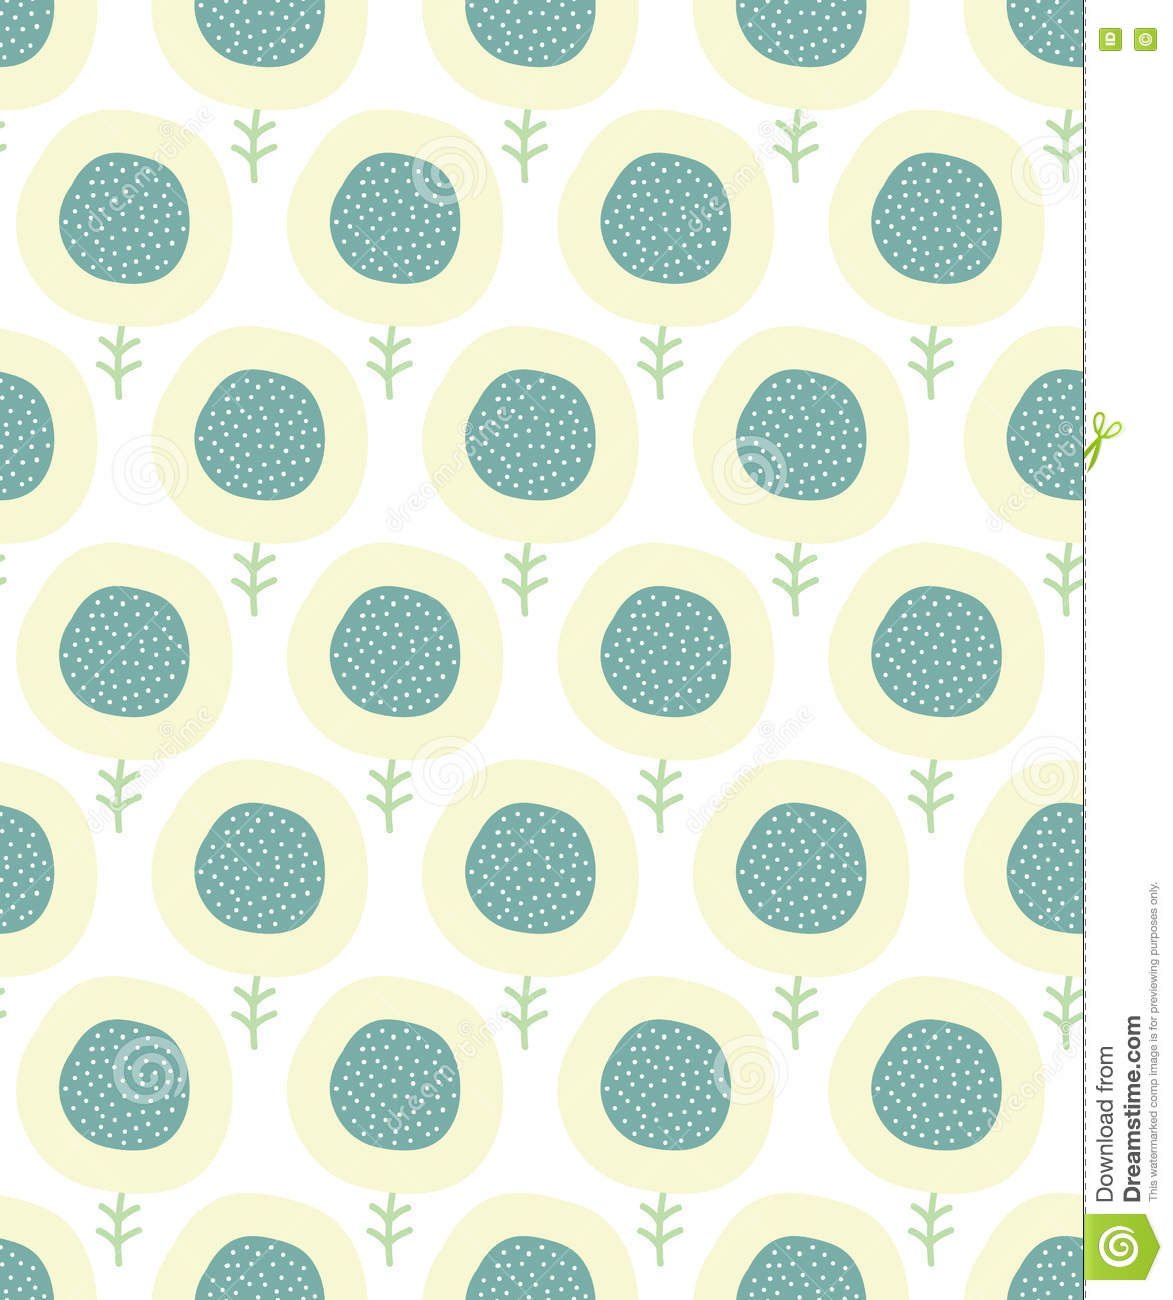 simple kids flower pattern. doodle pastel seamless background. cute